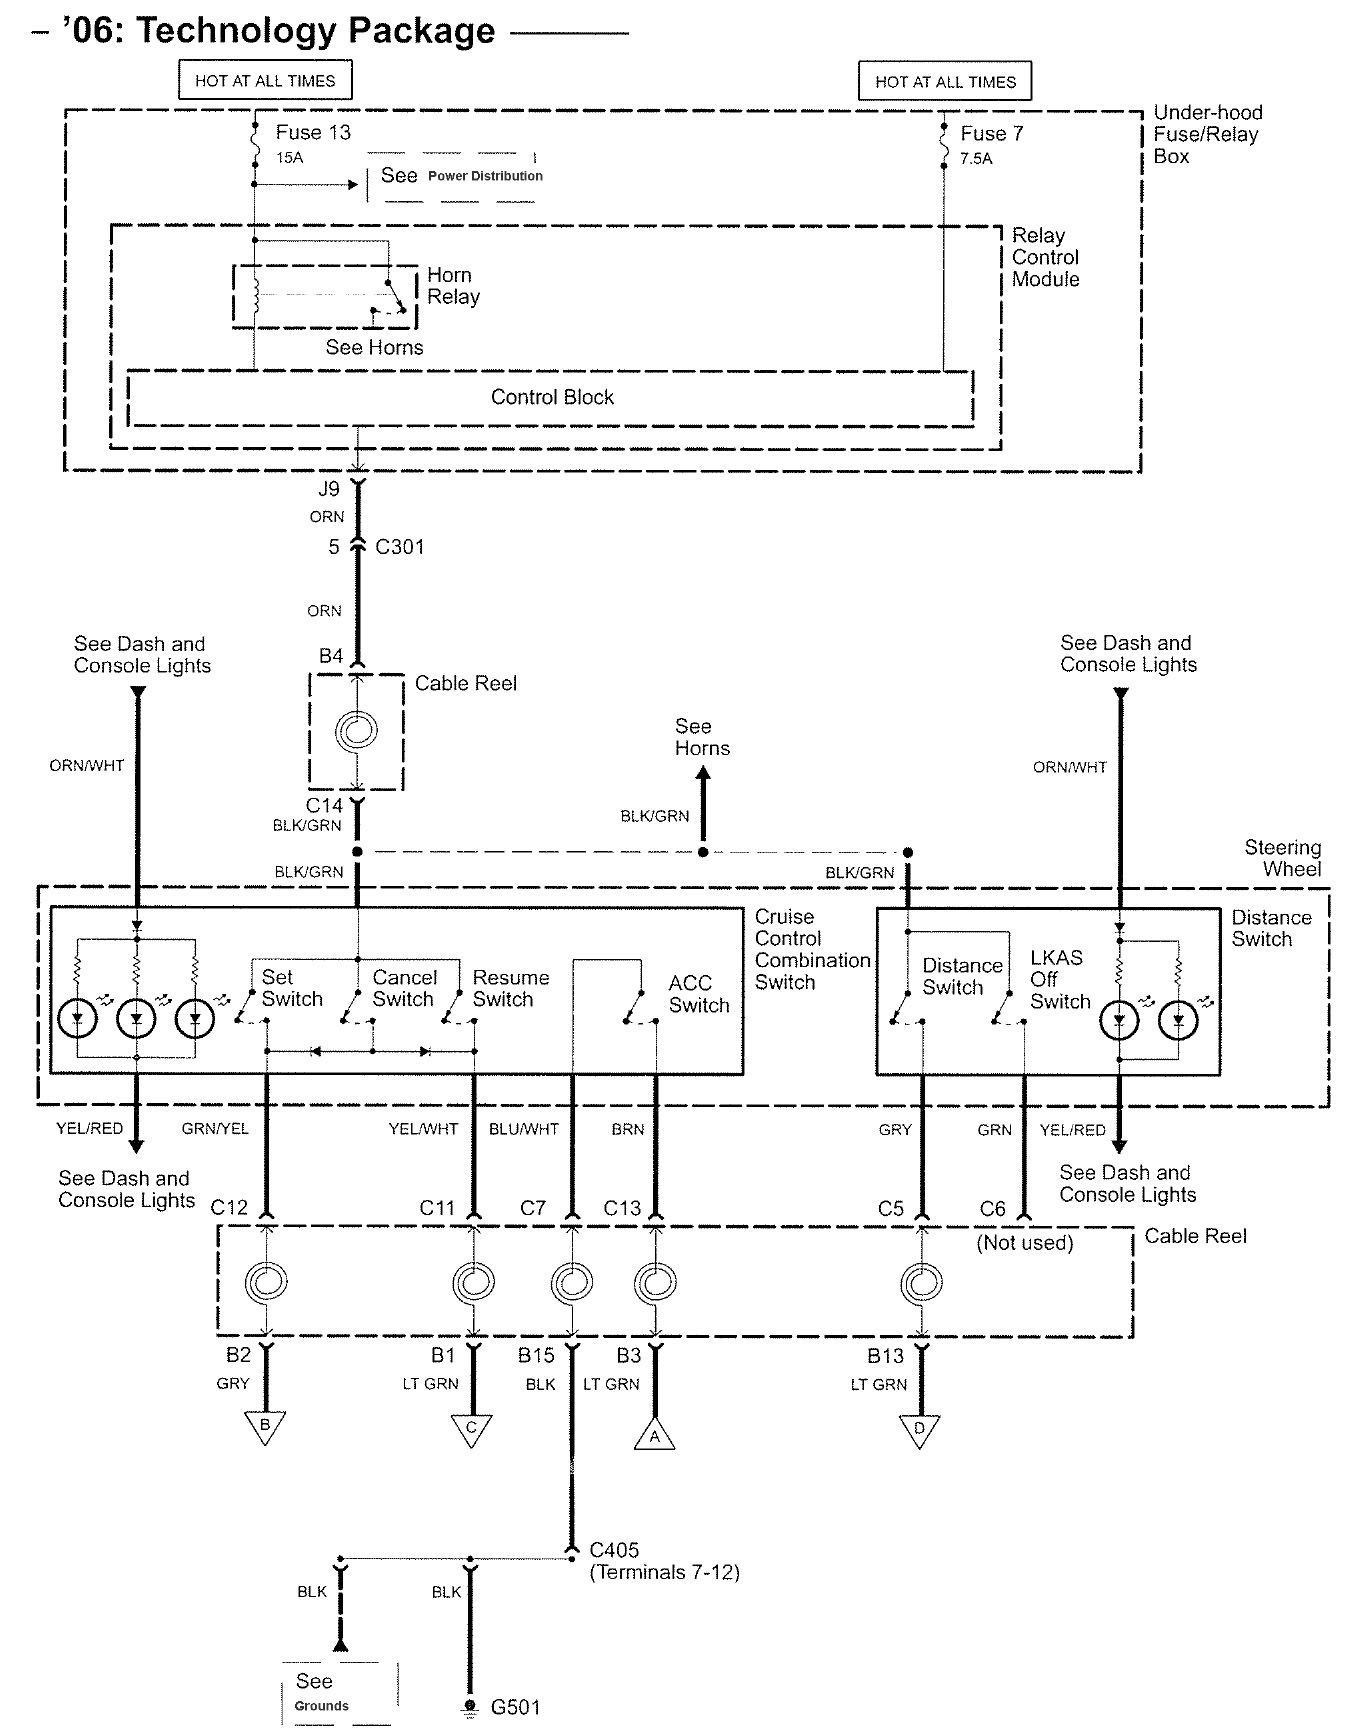 acura rl wiring diagram speed control v5 1 2006 400ex headlight wiring diagram honda 400ex stator diagram \u2022 wiring crf250x wiring diagram at reclaimingppi.co